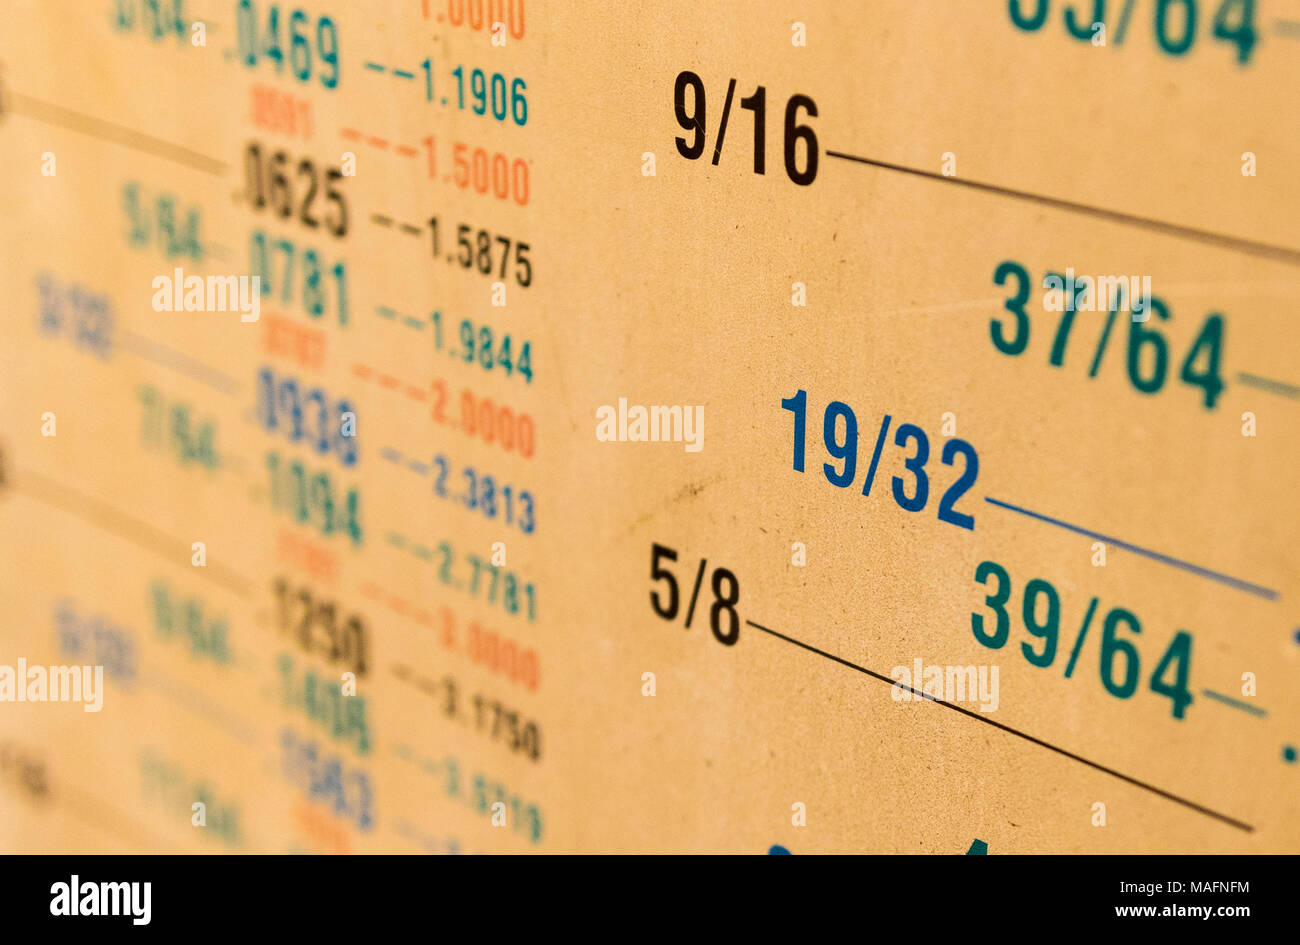 Fractional to decimal measurement size conversion chart yellowed from age covered in dust - Stock Image